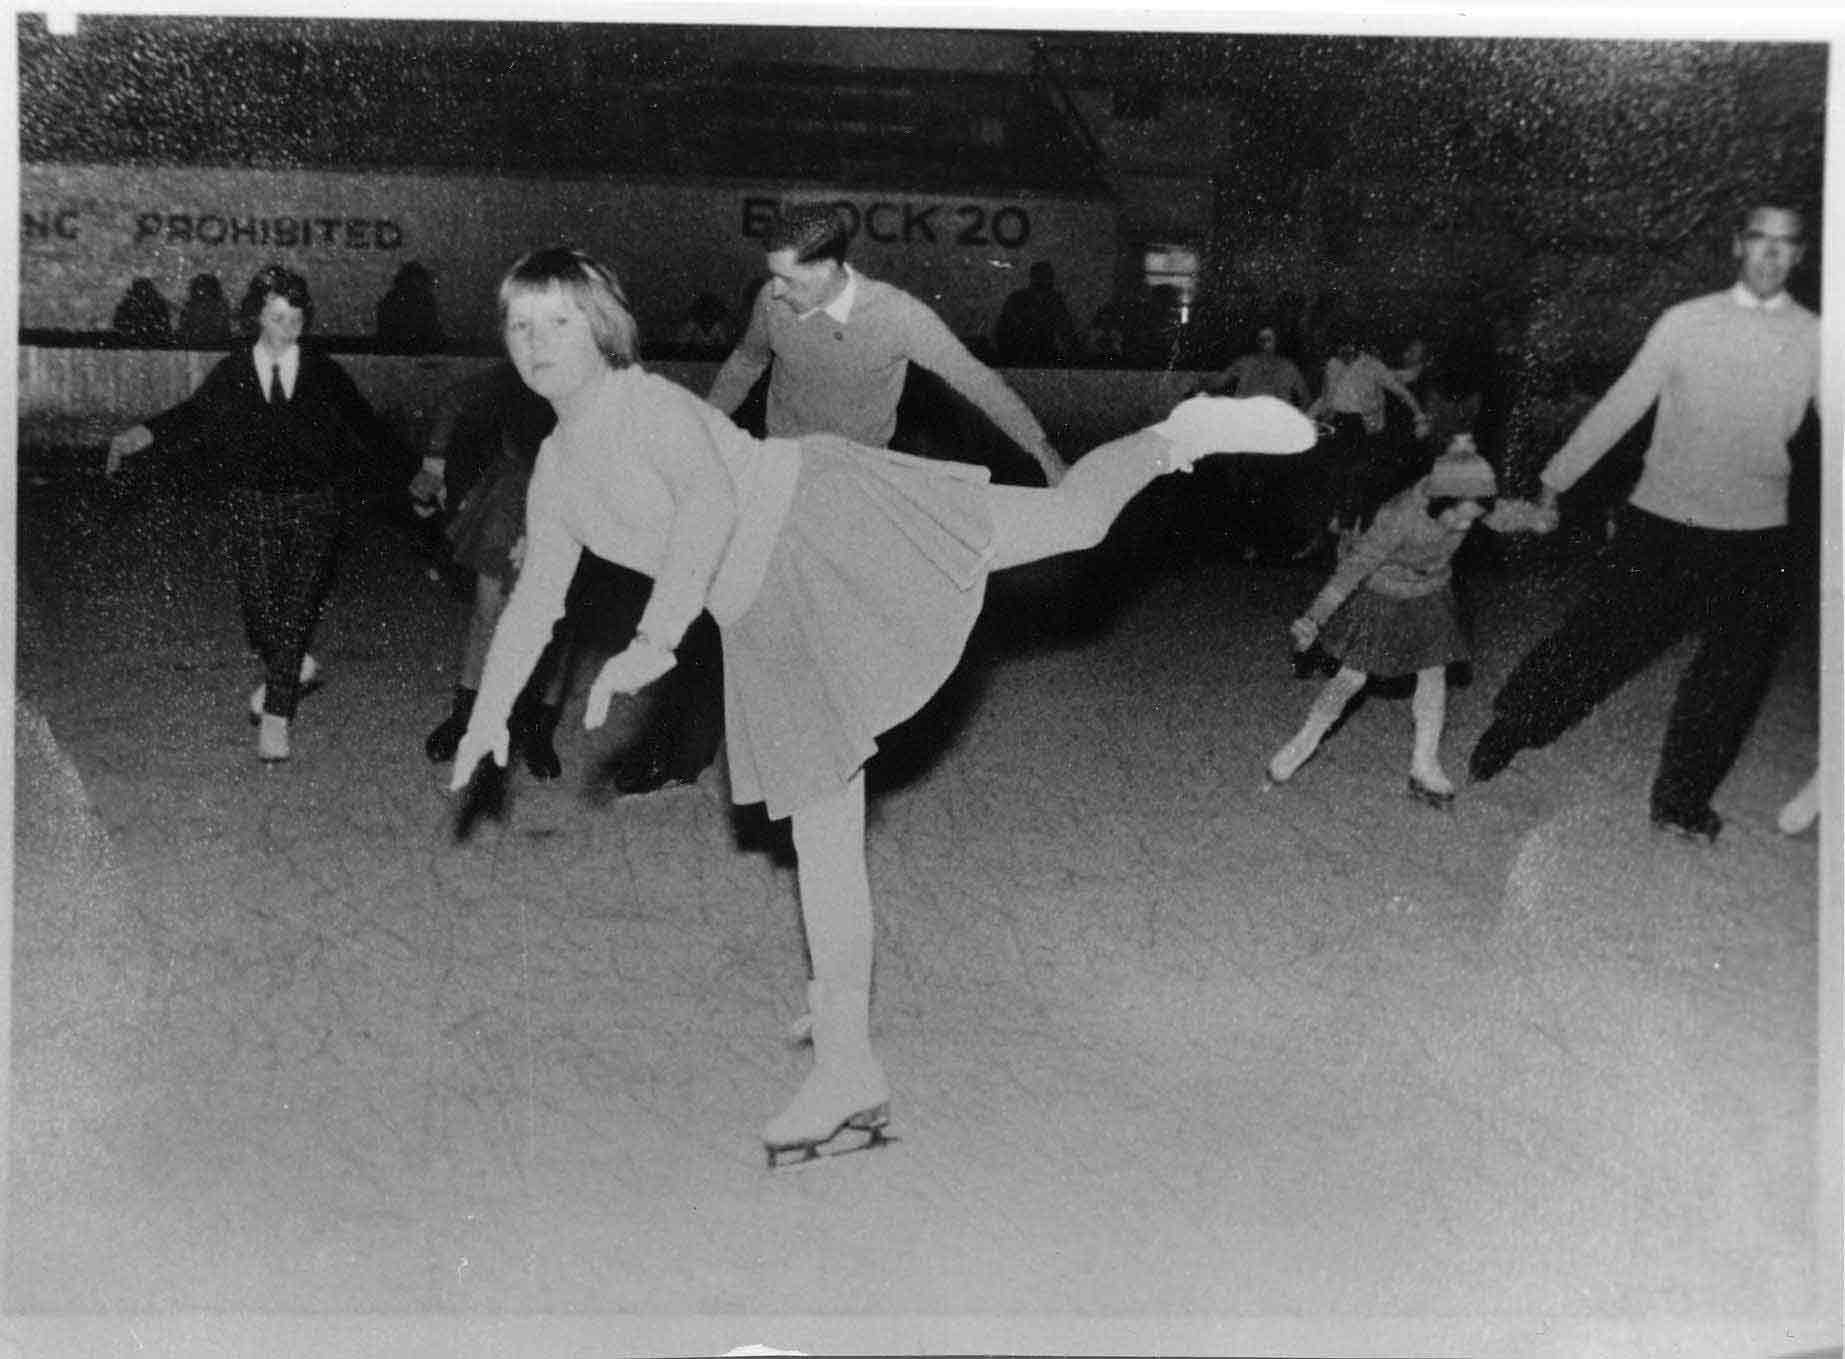 Skating At Murrayfield Ice Rink 1958